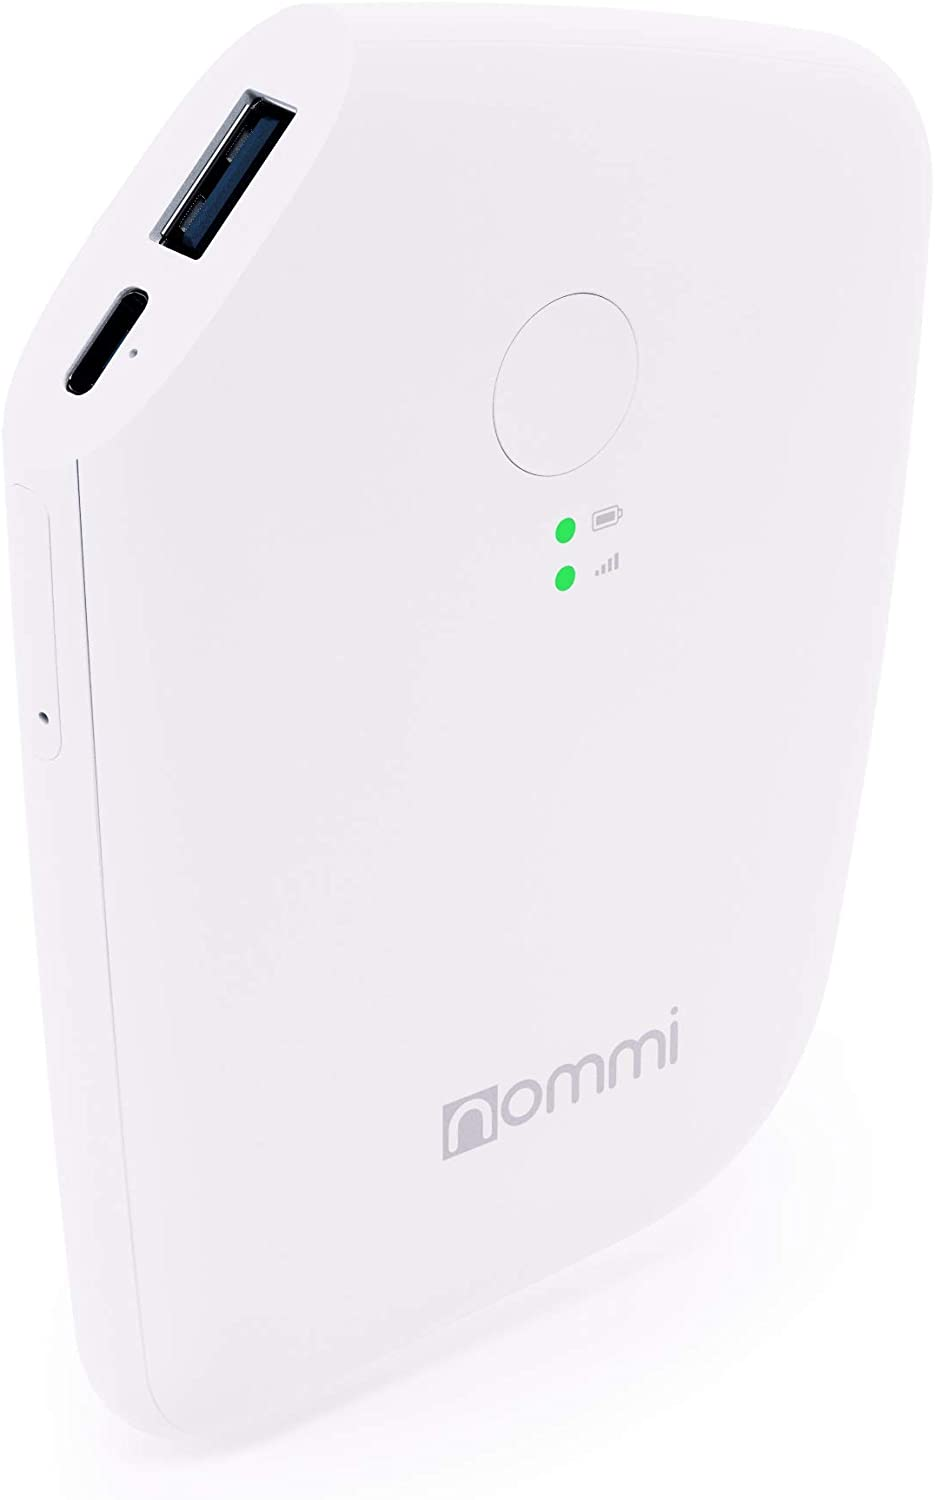 Nommi: Mobile Hotspot | Secured 4G LTE Unlocked Wi-Fi Hotspot Device | Pay-as-You-Go Portable MiFi Hotspot | 10GB US Data + VPN | Wi-Fi Extender | eSIM/SIM in 150 Countries | 5600 mAh Power Bank